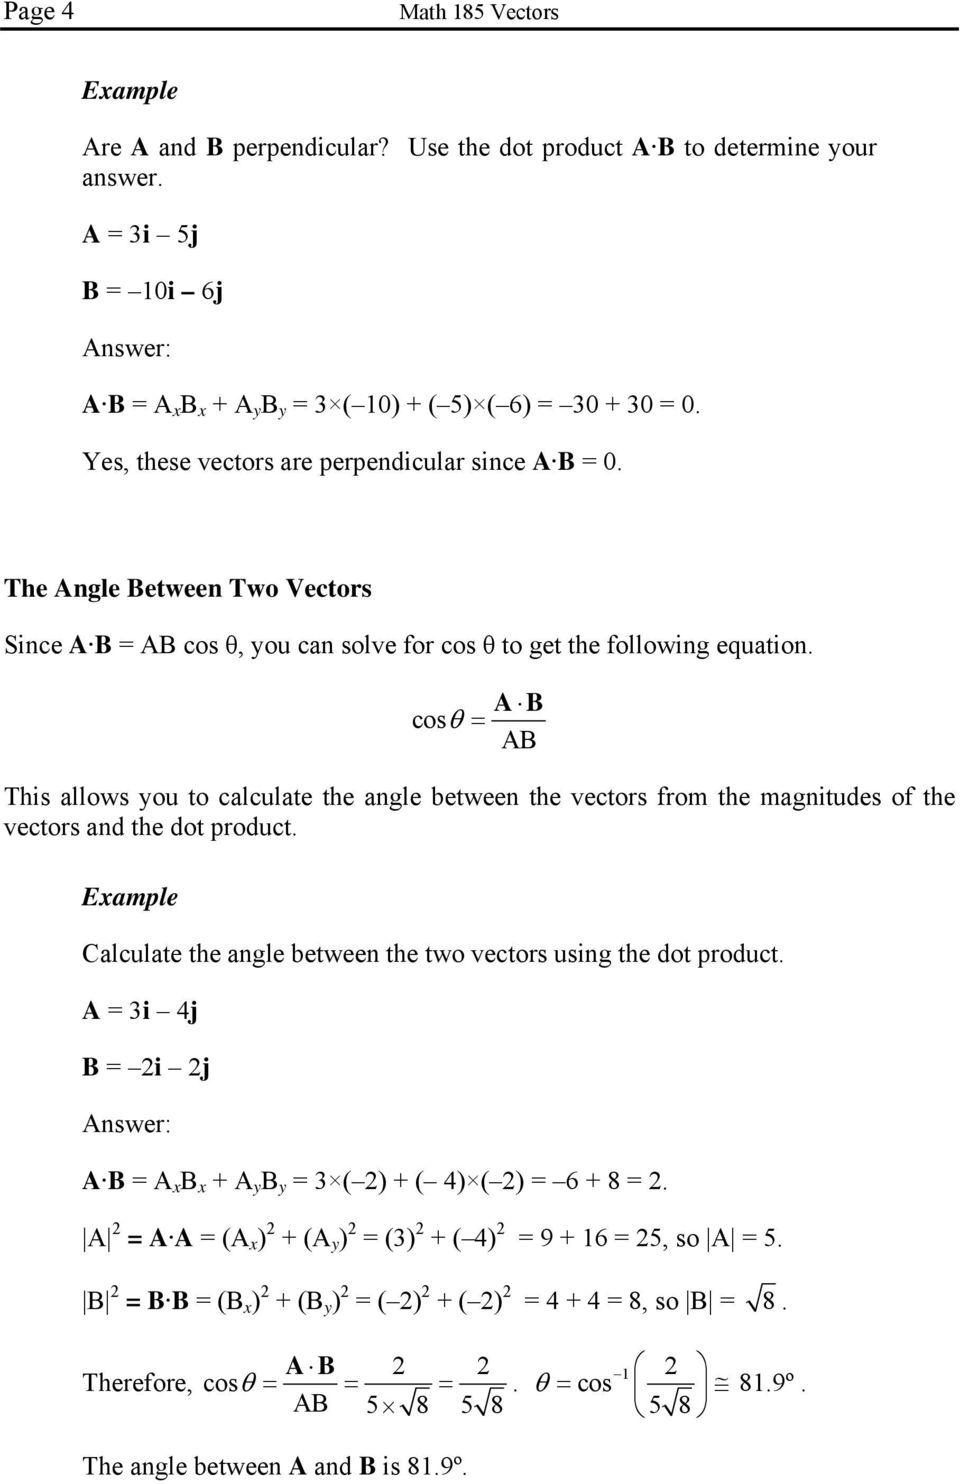 cos AB AB This allows you to calculate the angle between the vectors from the magnitudes of the vectors and the dot product. Calculate the angle between the two vectors using the dot product.